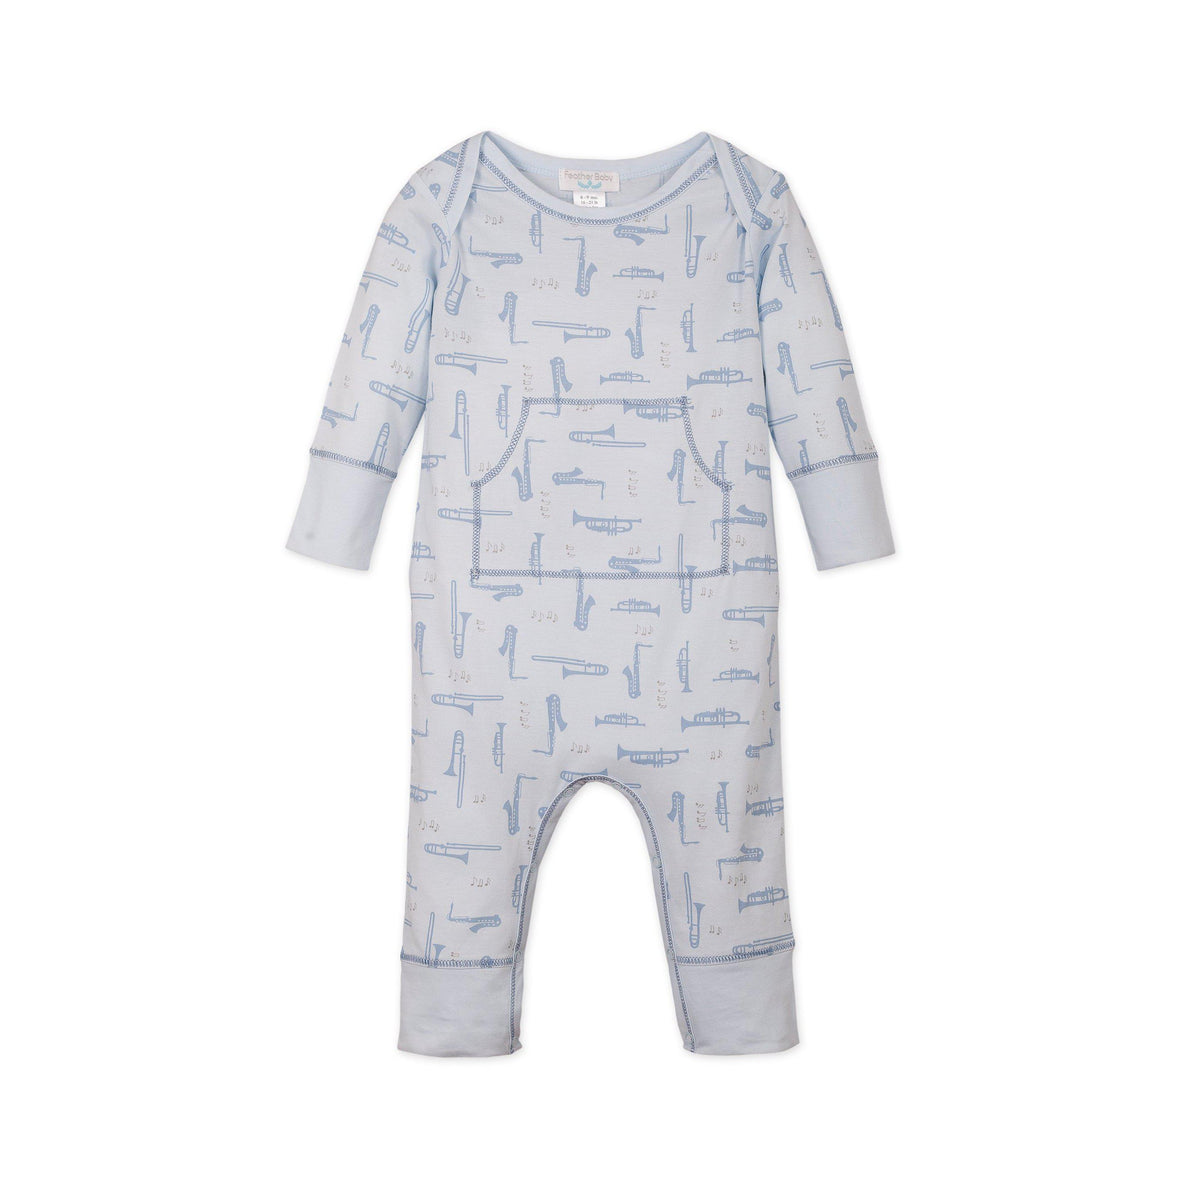 Faux Kangaroo ~ Instruments on Baby Blue-Long Rompers-Soft Pima Cotton-Free Shipping-Baby Gift Wrap-Feather Baby